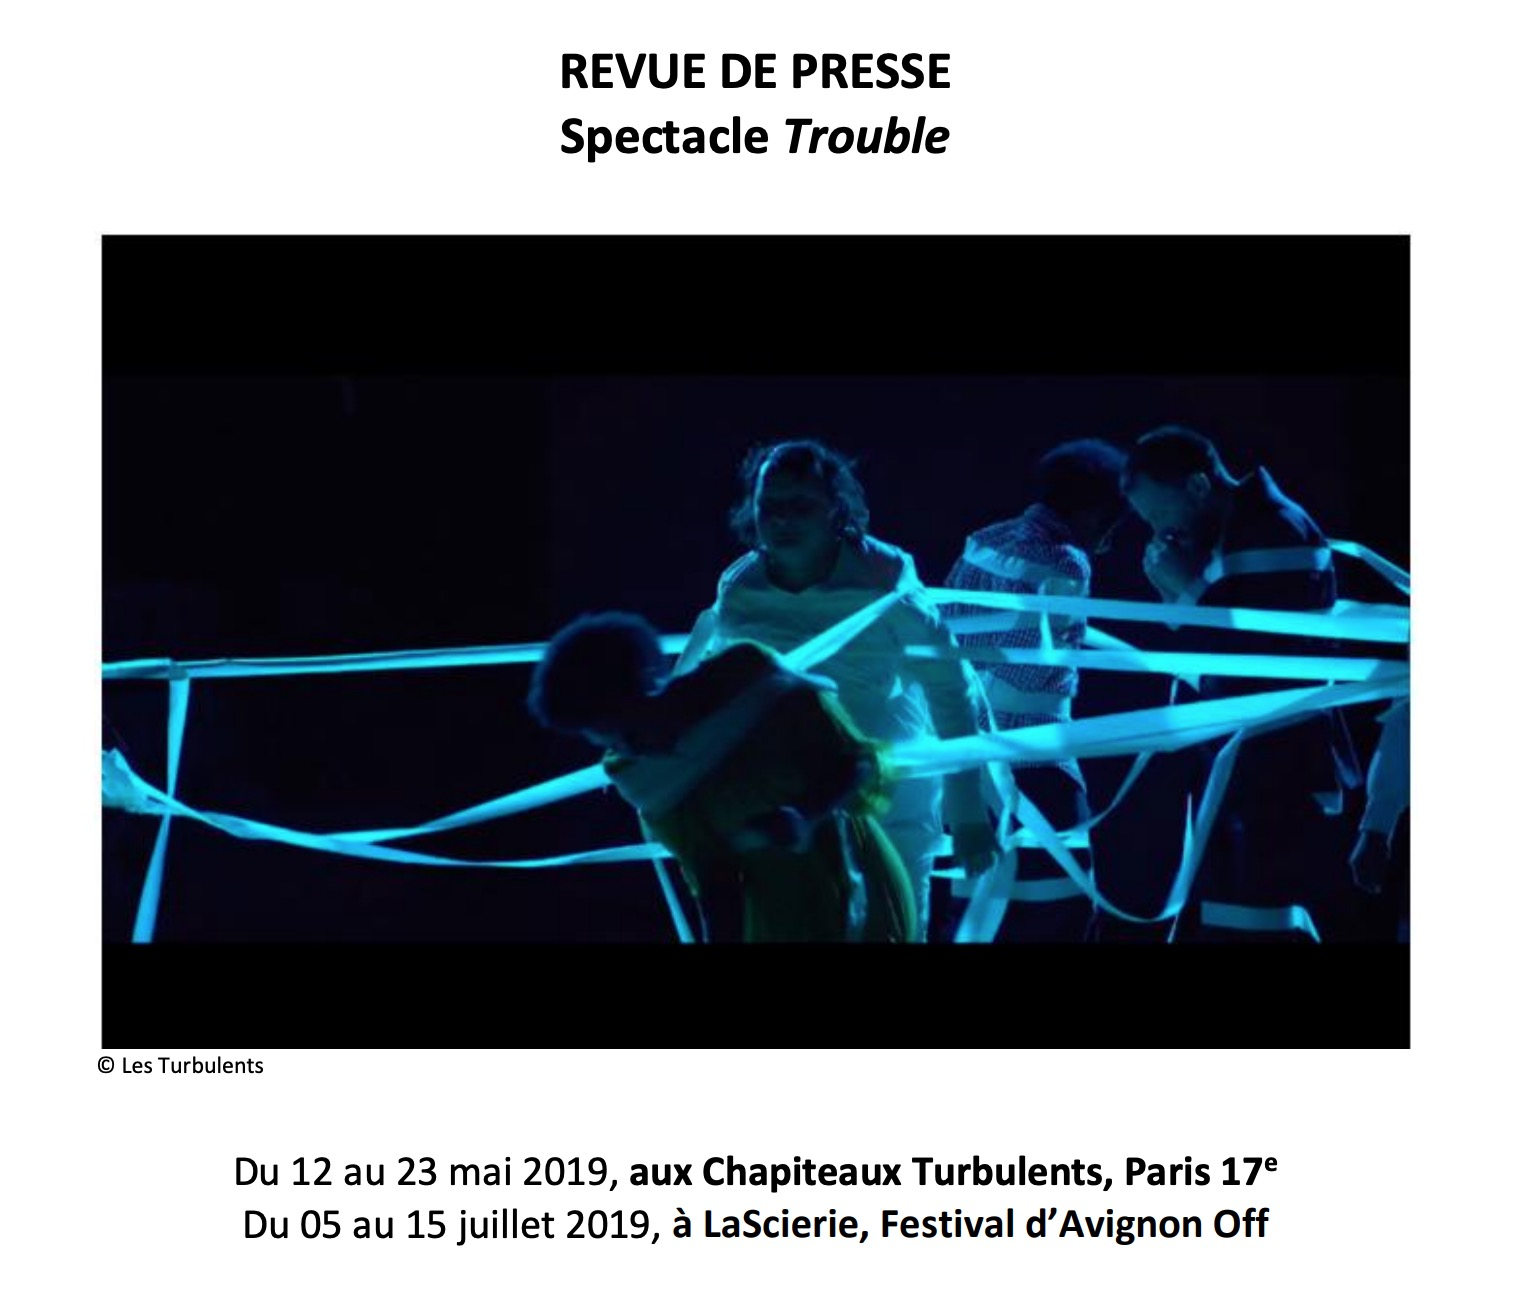 REVUE DE PRESSE Spectacle Trouble 2019